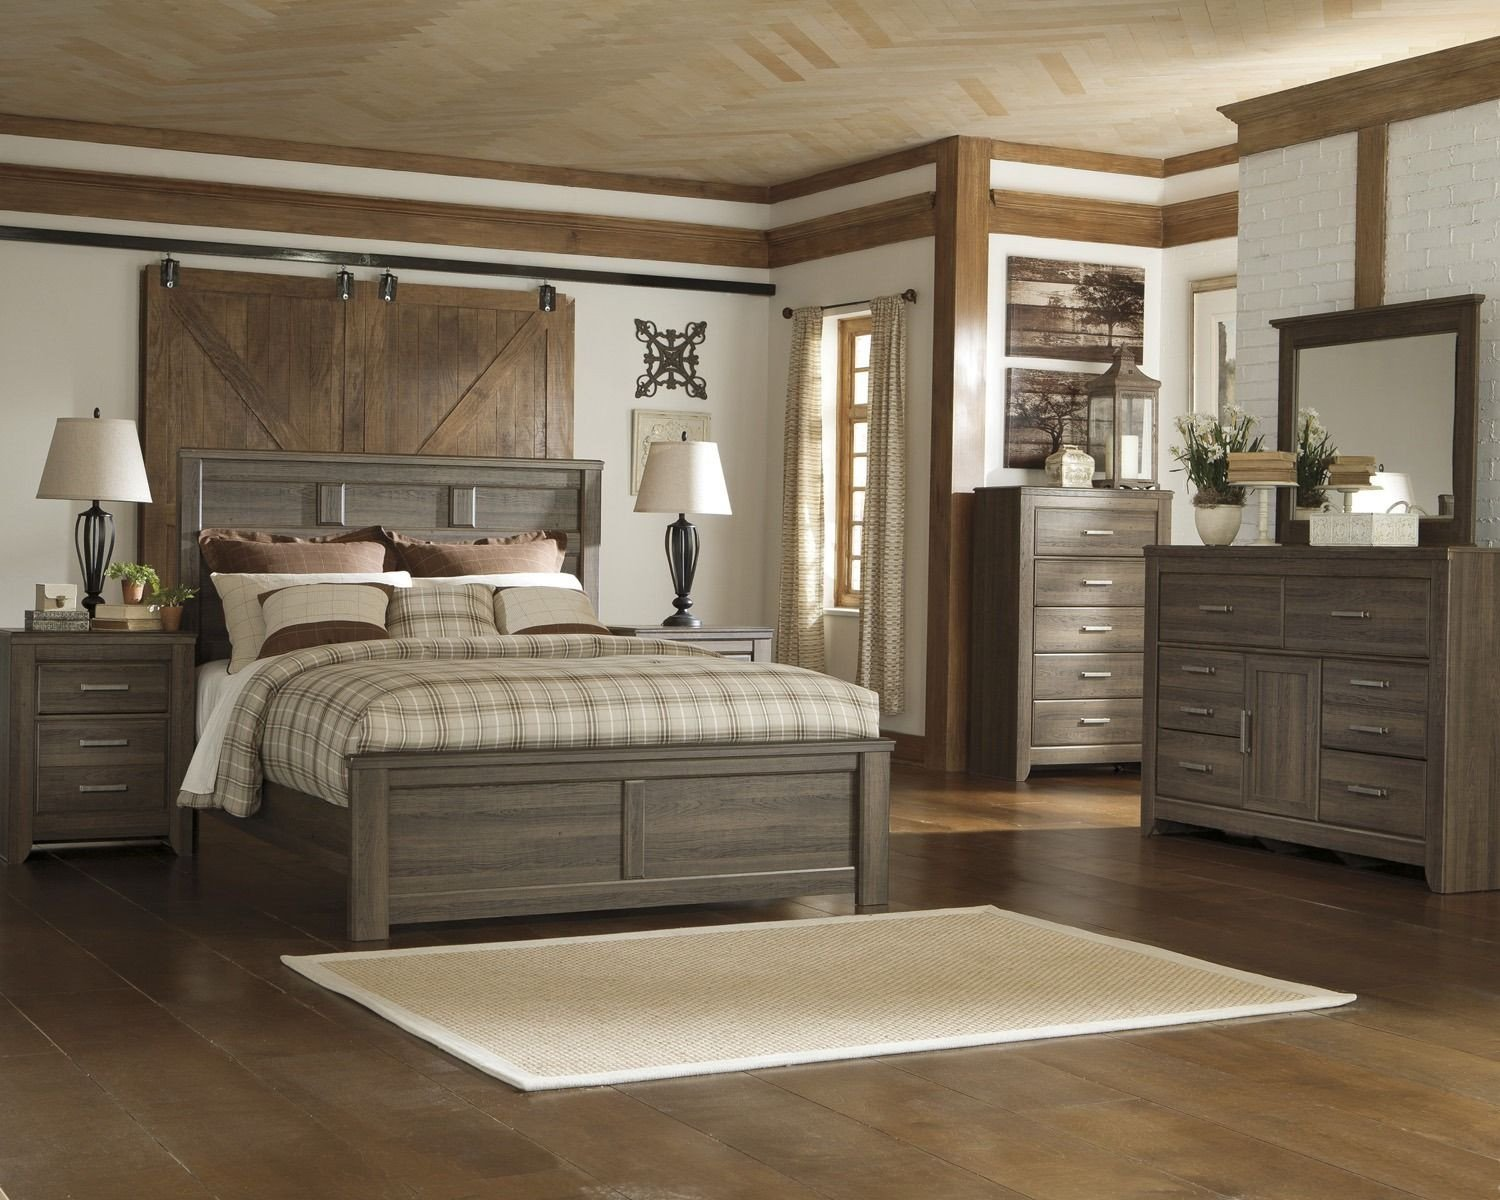 Ashley King Size Bedroom Set Awesome Juararo Panel Bedroom Set by ashley Home Gallery Stores